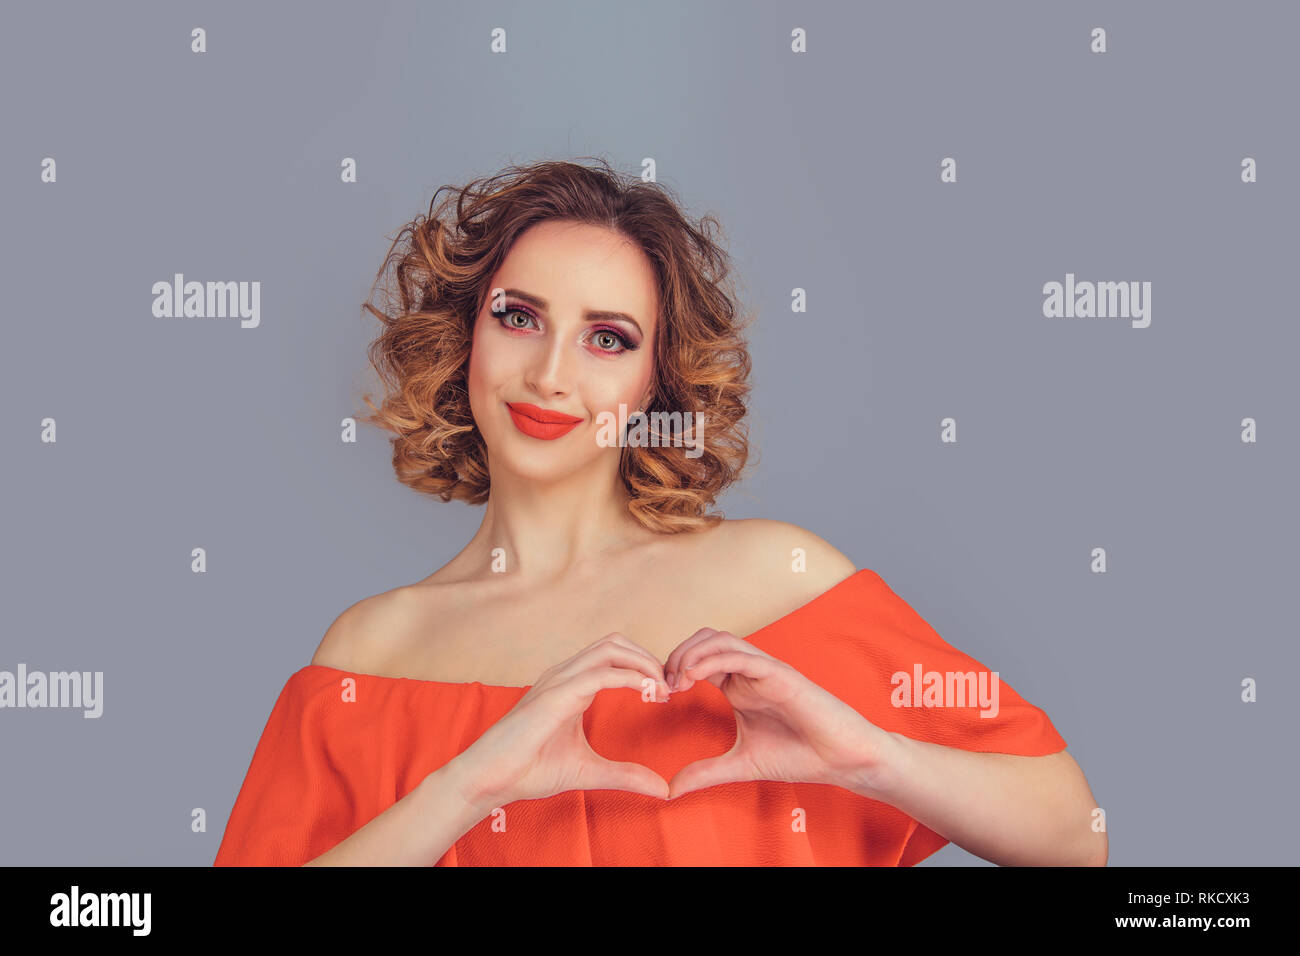 smiling happy young woman making heart sign with hands - Stock Image